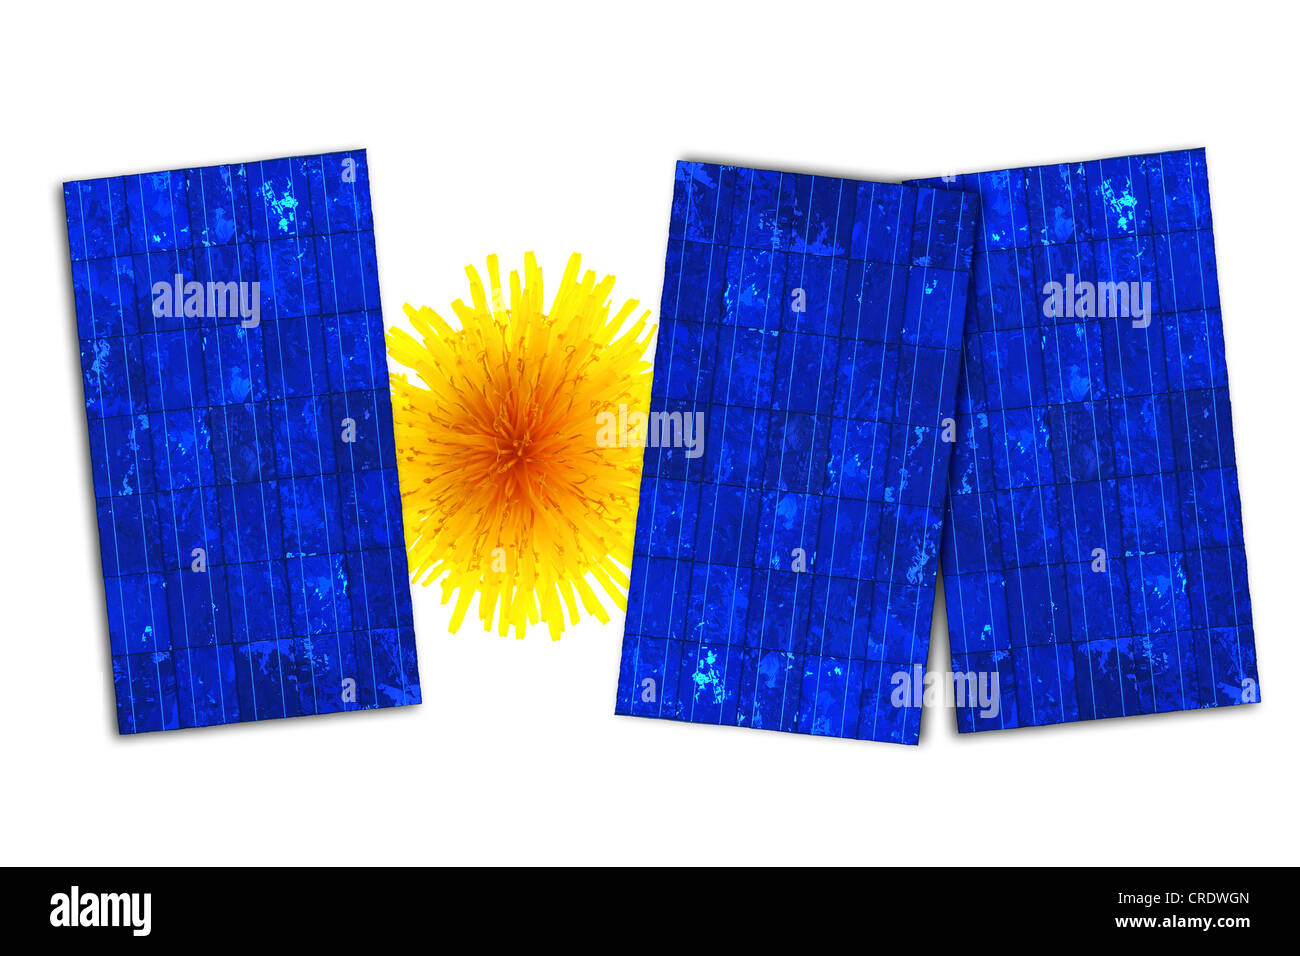 Solar panels with flower depicting the sun - Stock Image